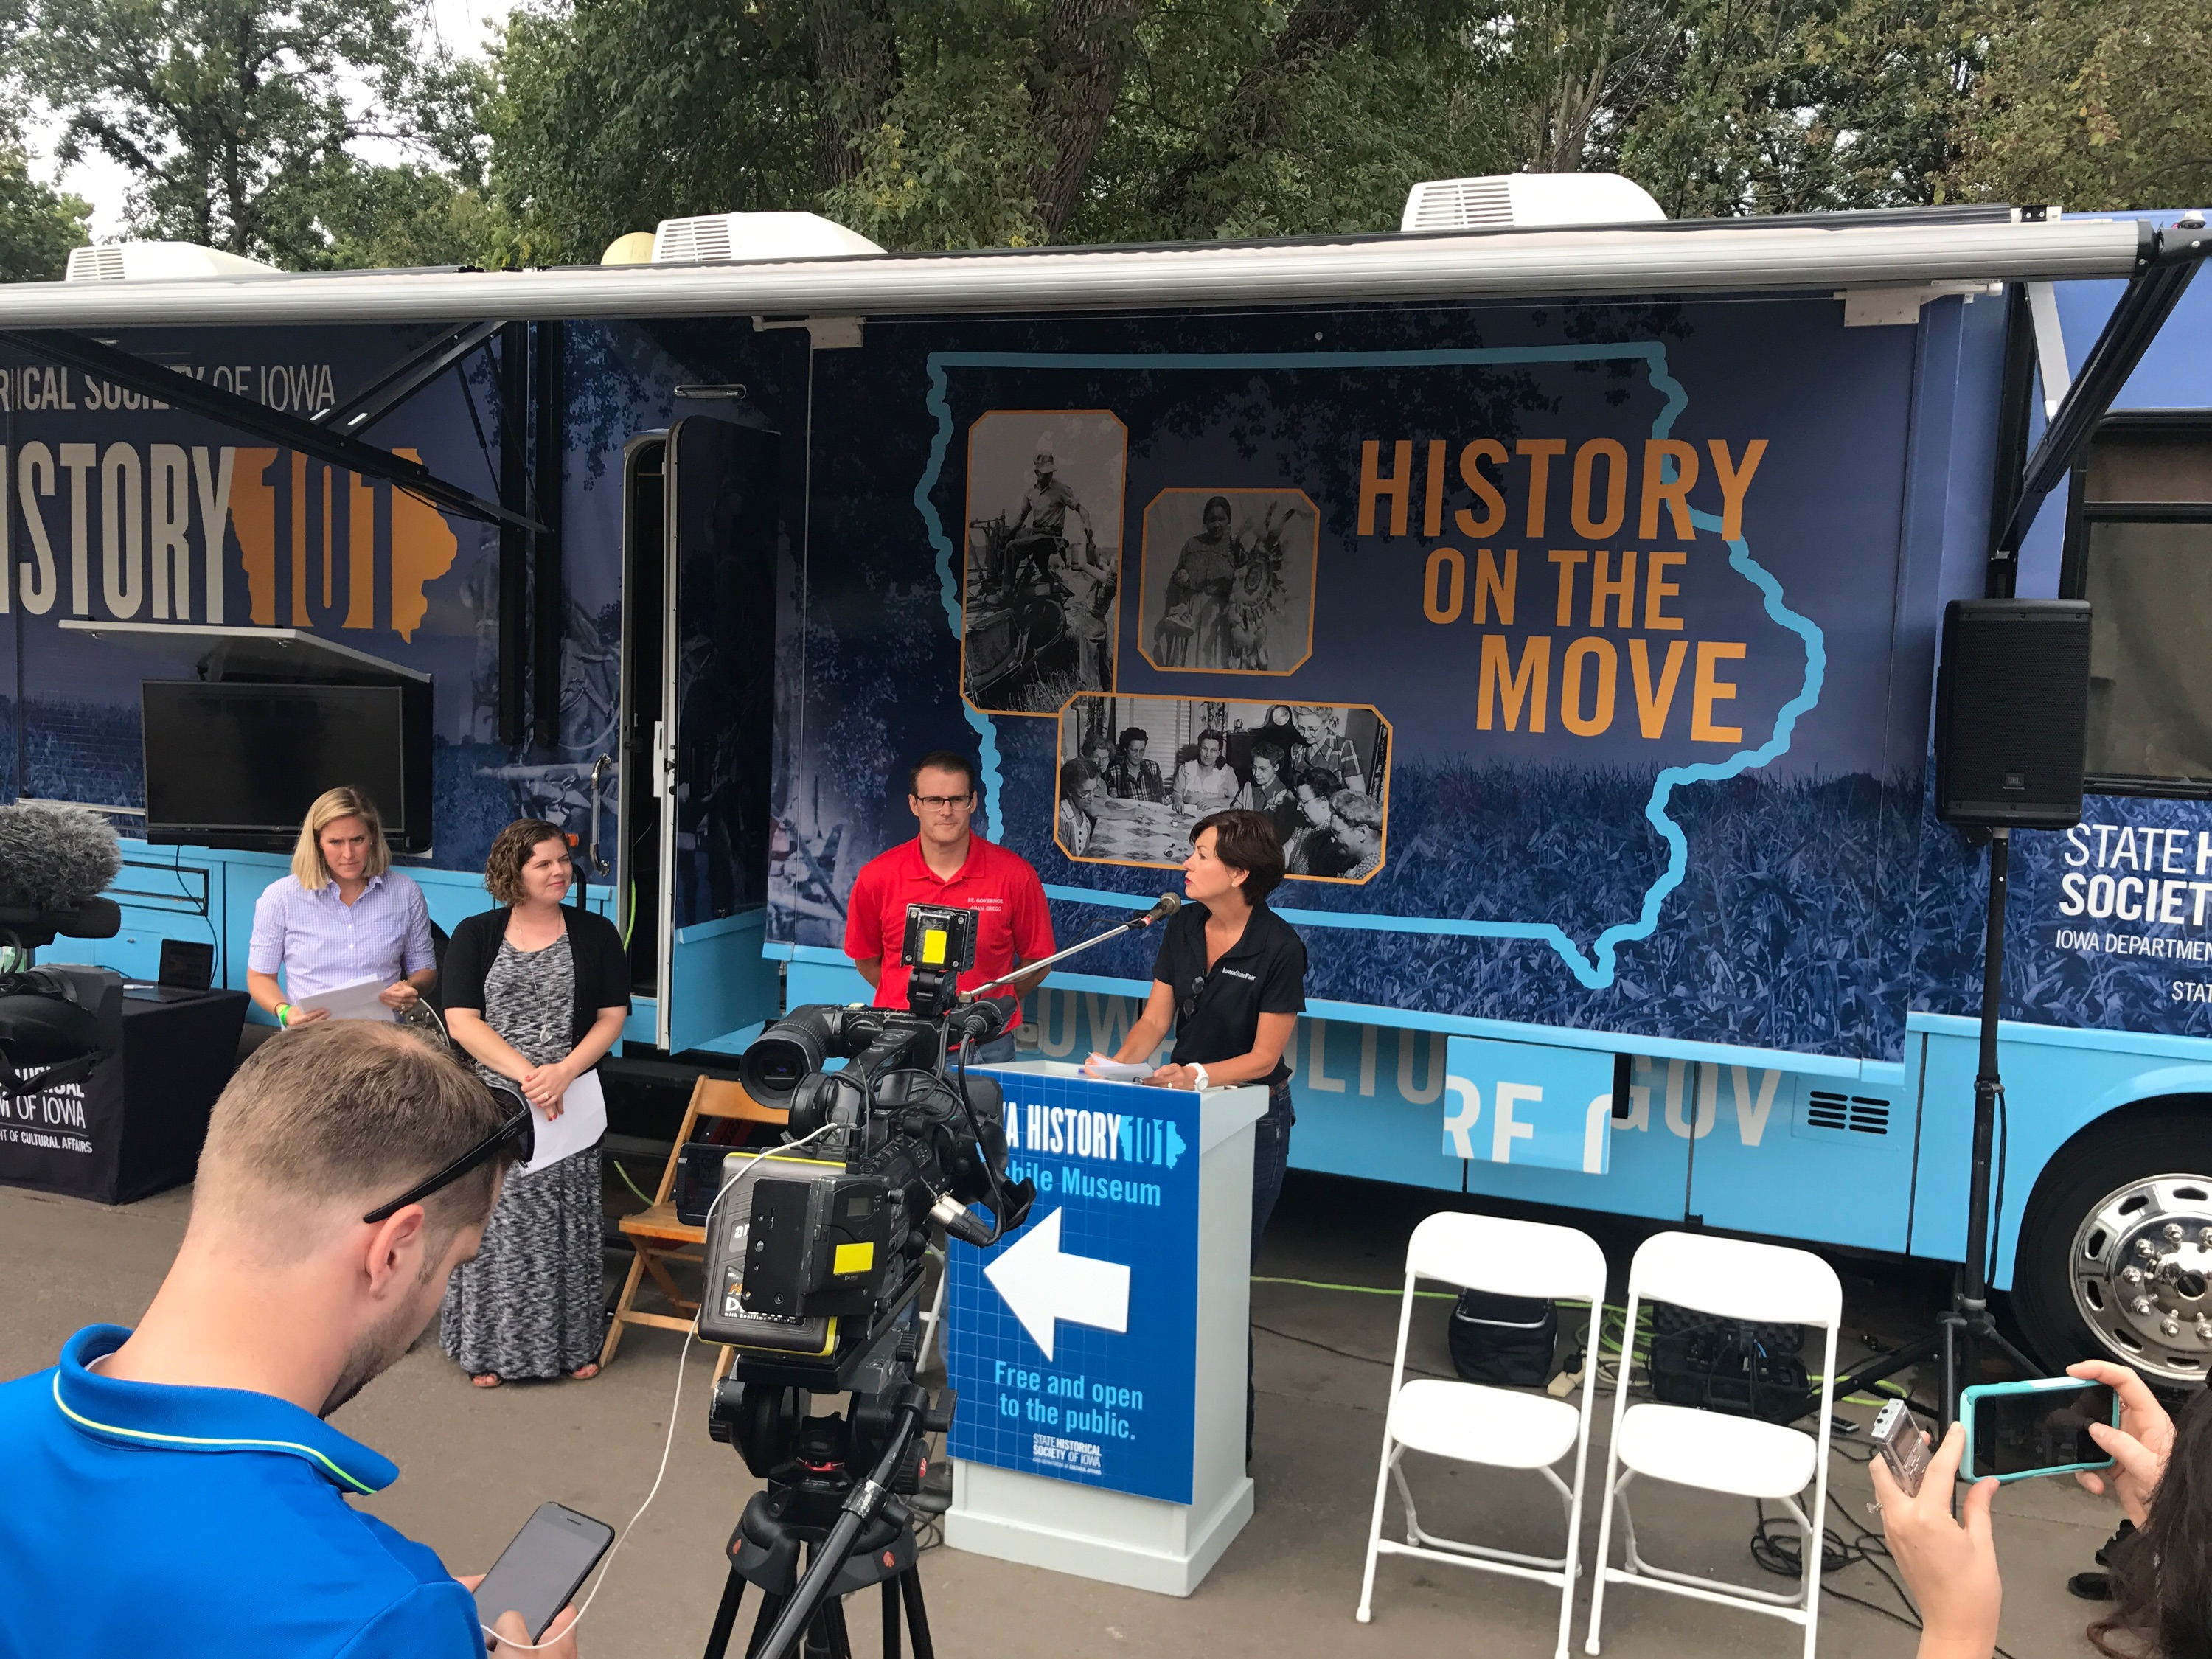 Gov. Reynolds, Lt. Gov. Gregg introduce mobile museum to fairgoers